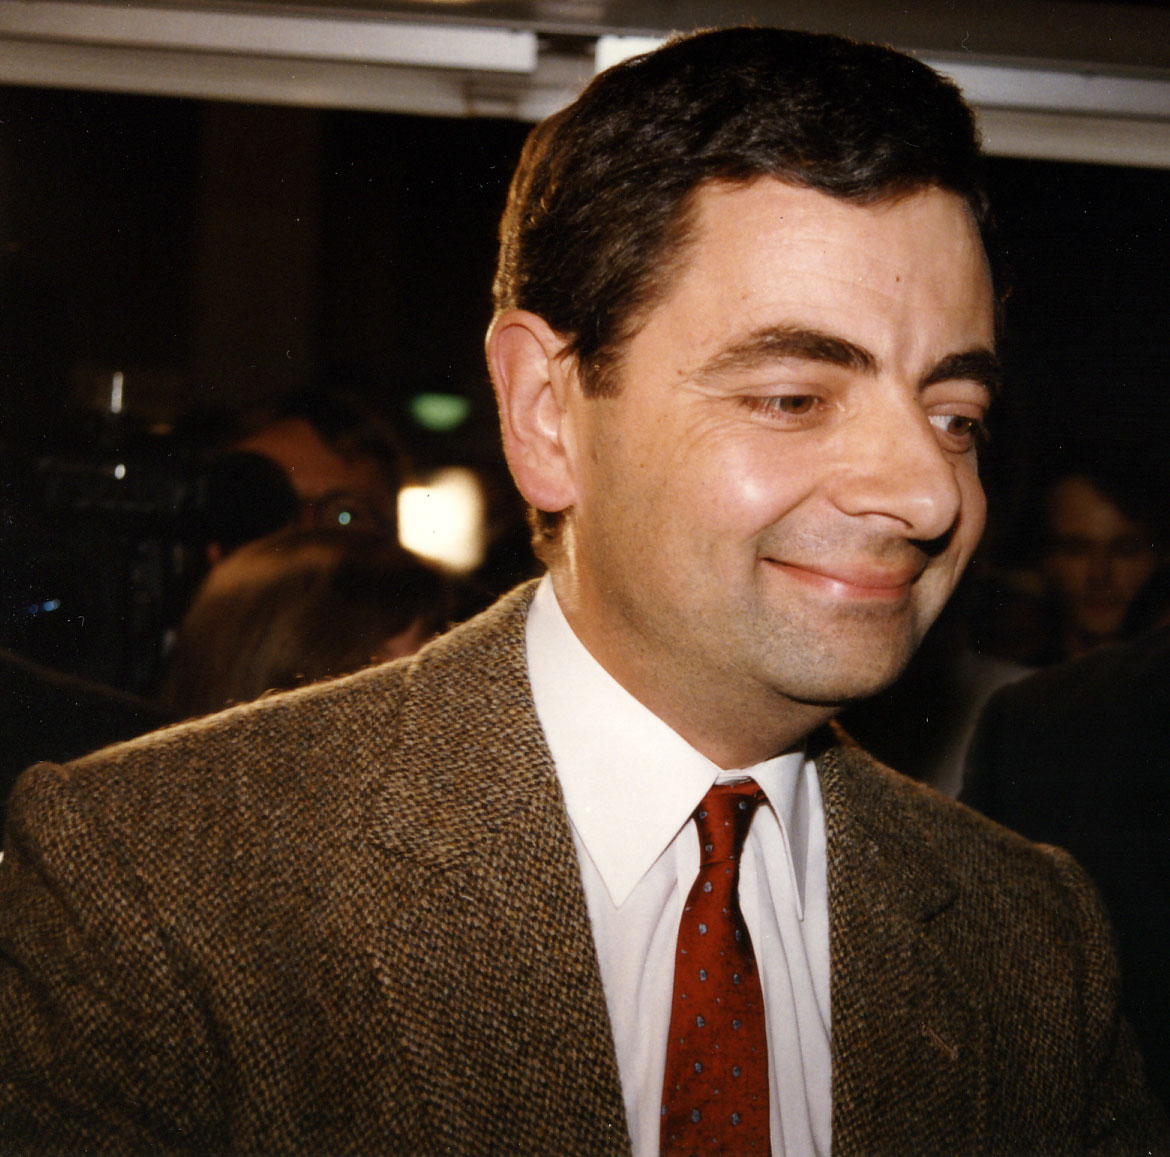 Biografia de Mr. Bean